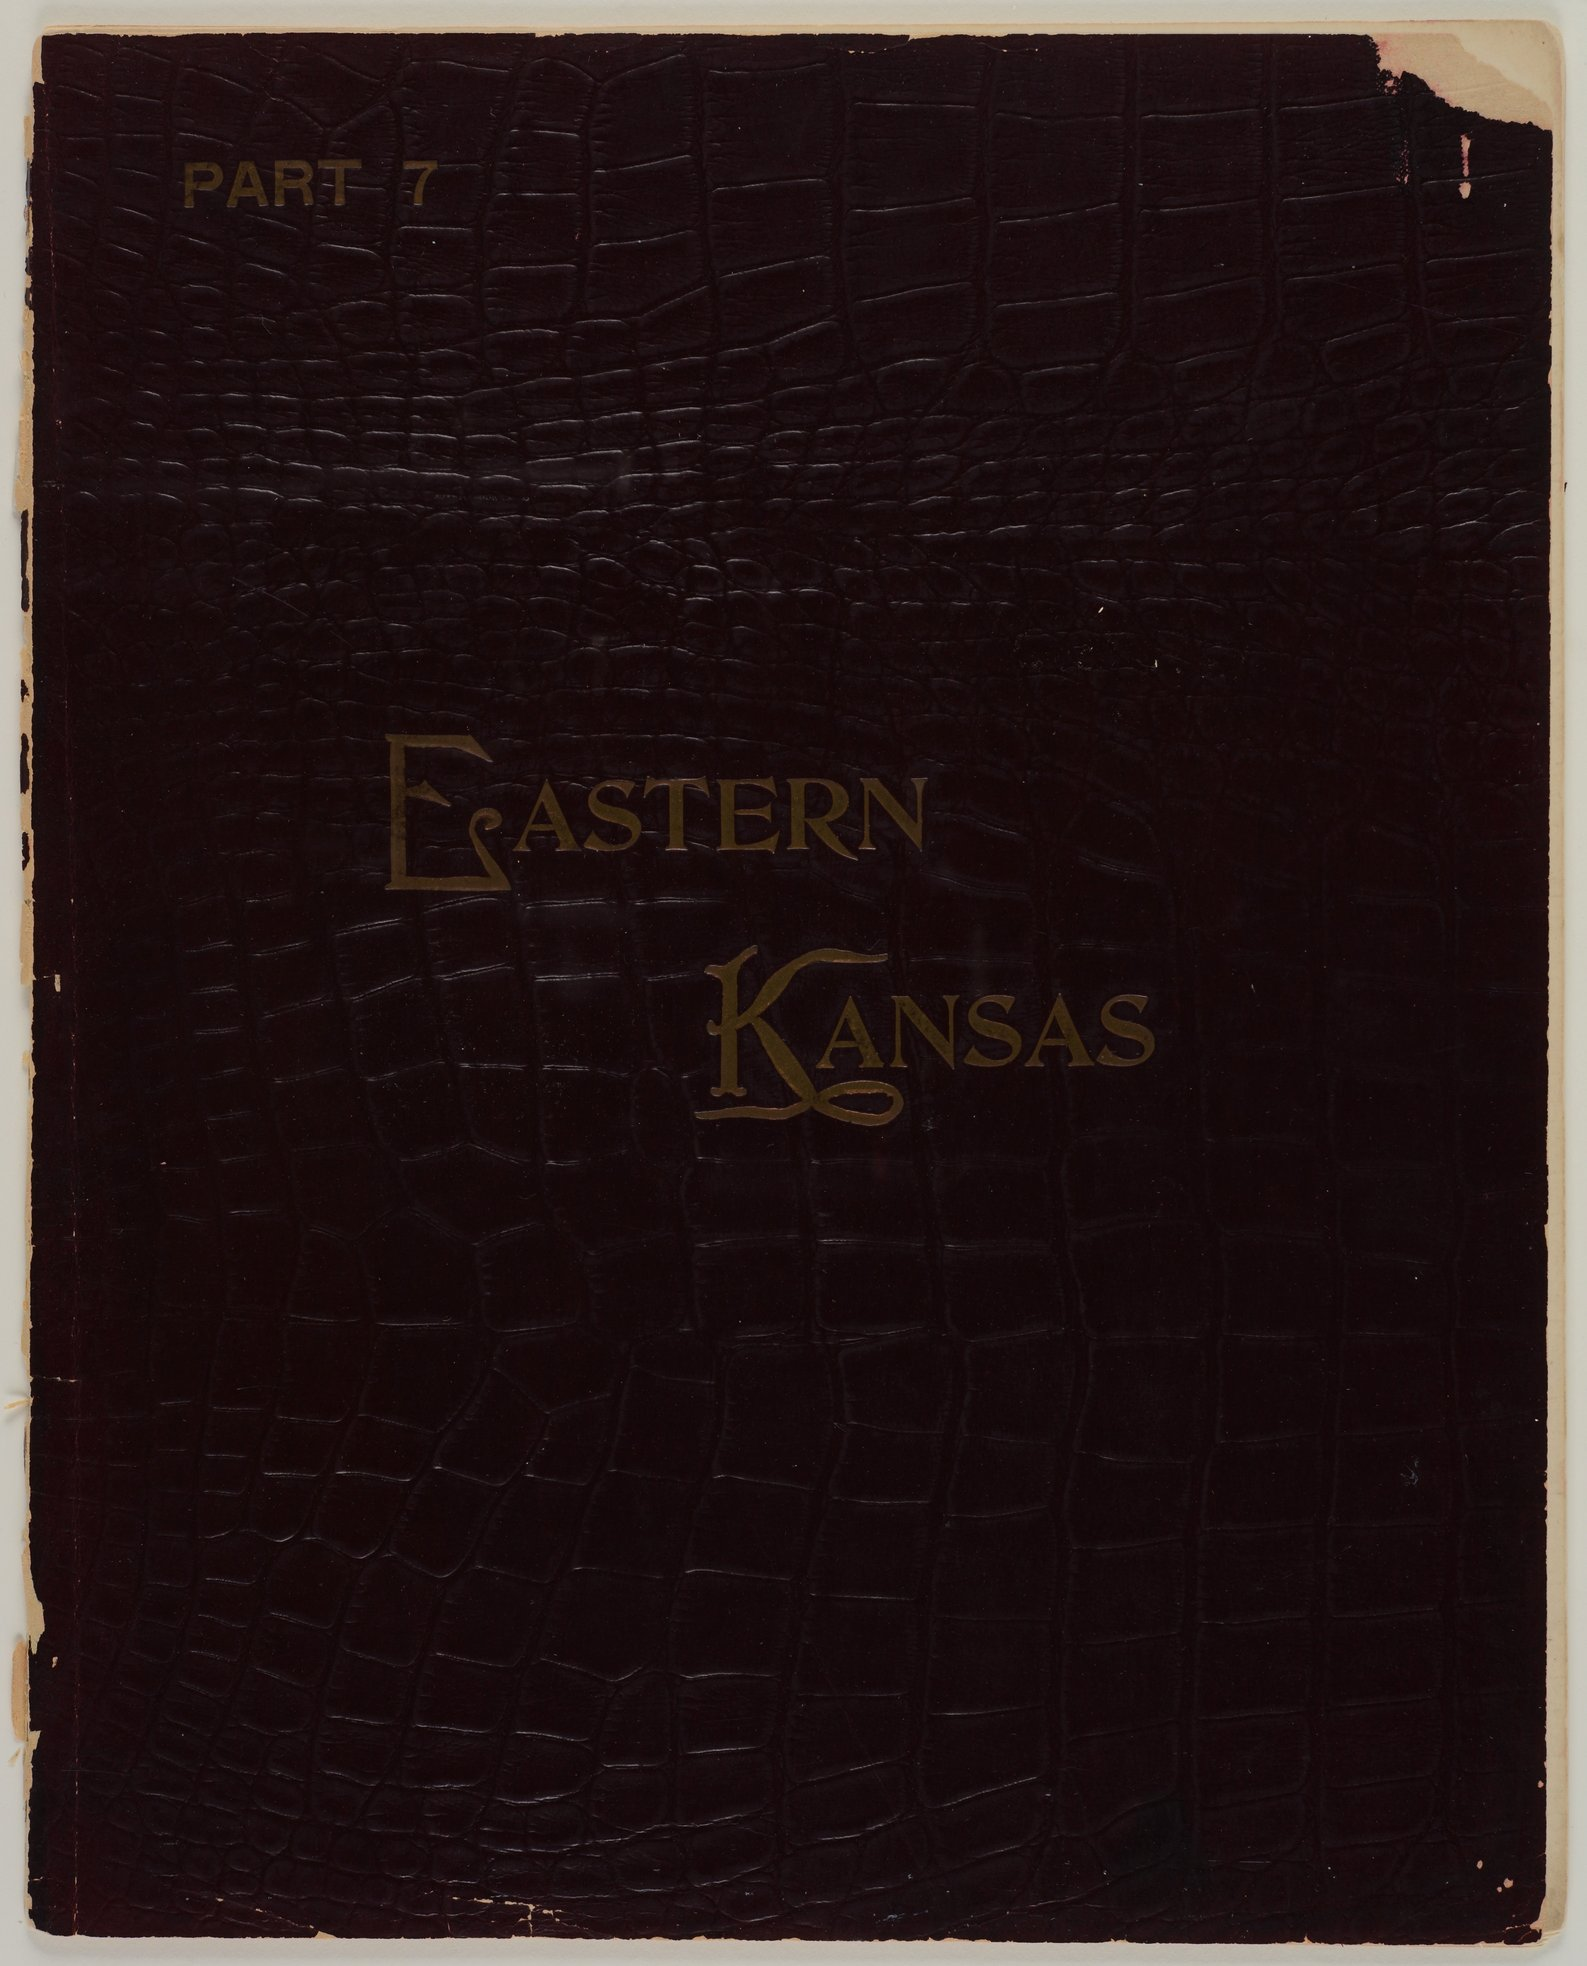 Art Work on Eastern Kansas - Front cover